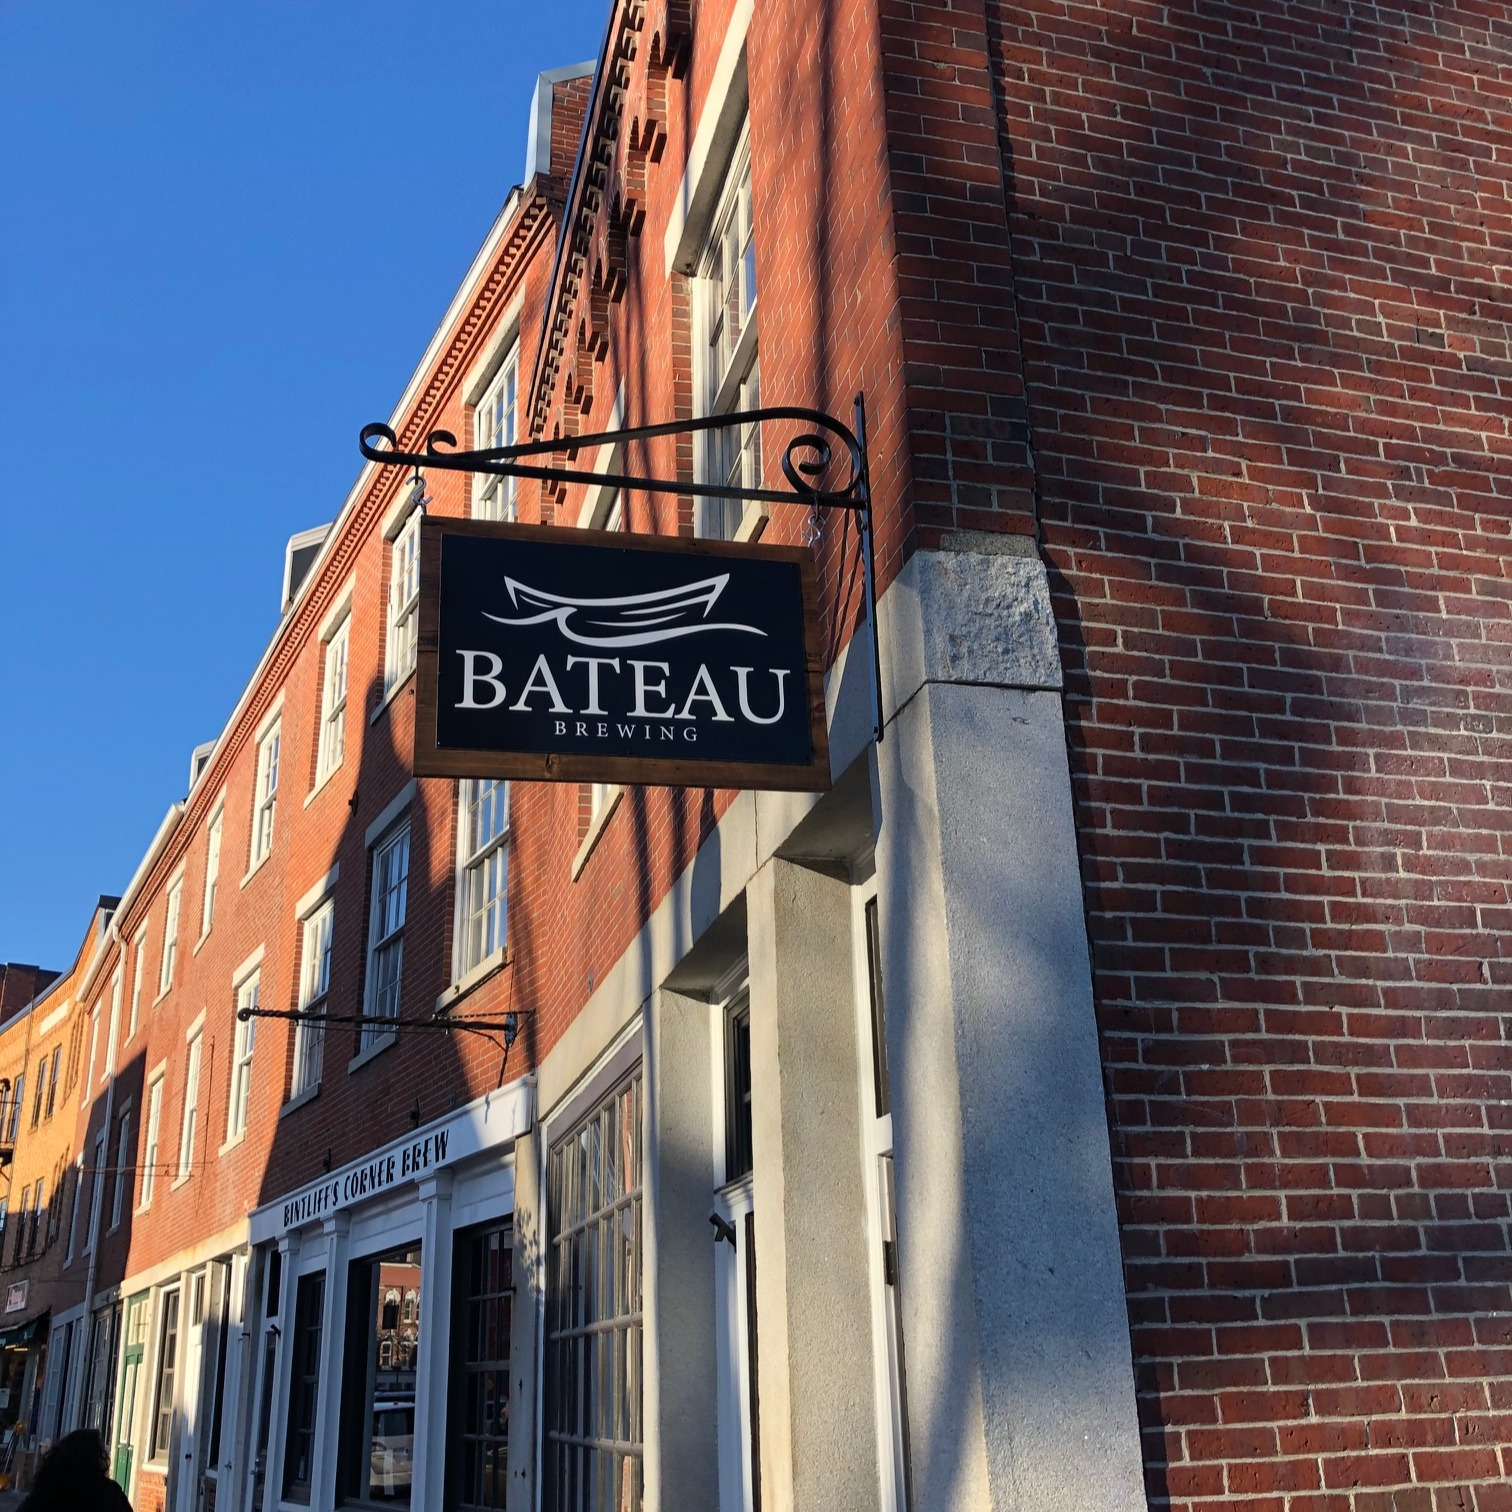 """Row of brick buildings with a hanging sign reading """"Bateau Brewing"""""""